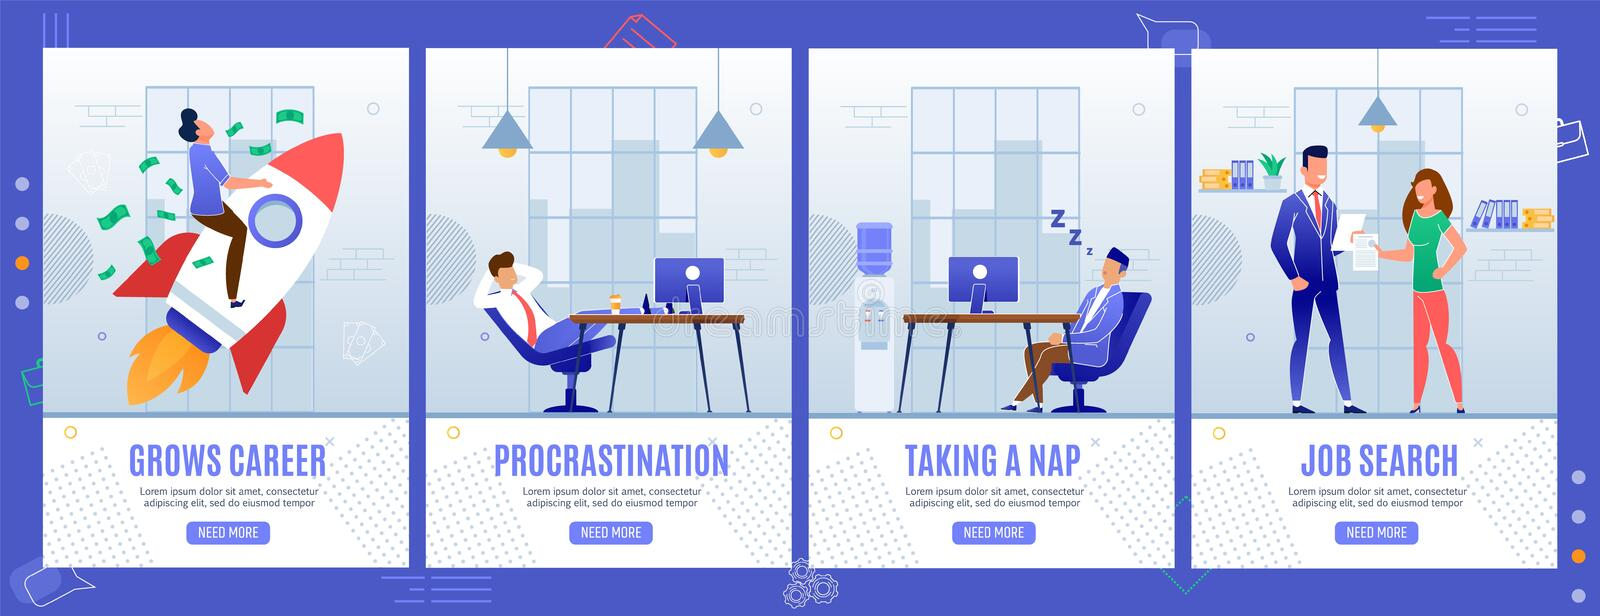 Office Life and Situation Mobile Landing Pages Set. Office Life Situations Mobile Landing Pages Set. Career Growth, Procrastination, Taking Nap, Job Search royalty free illustration